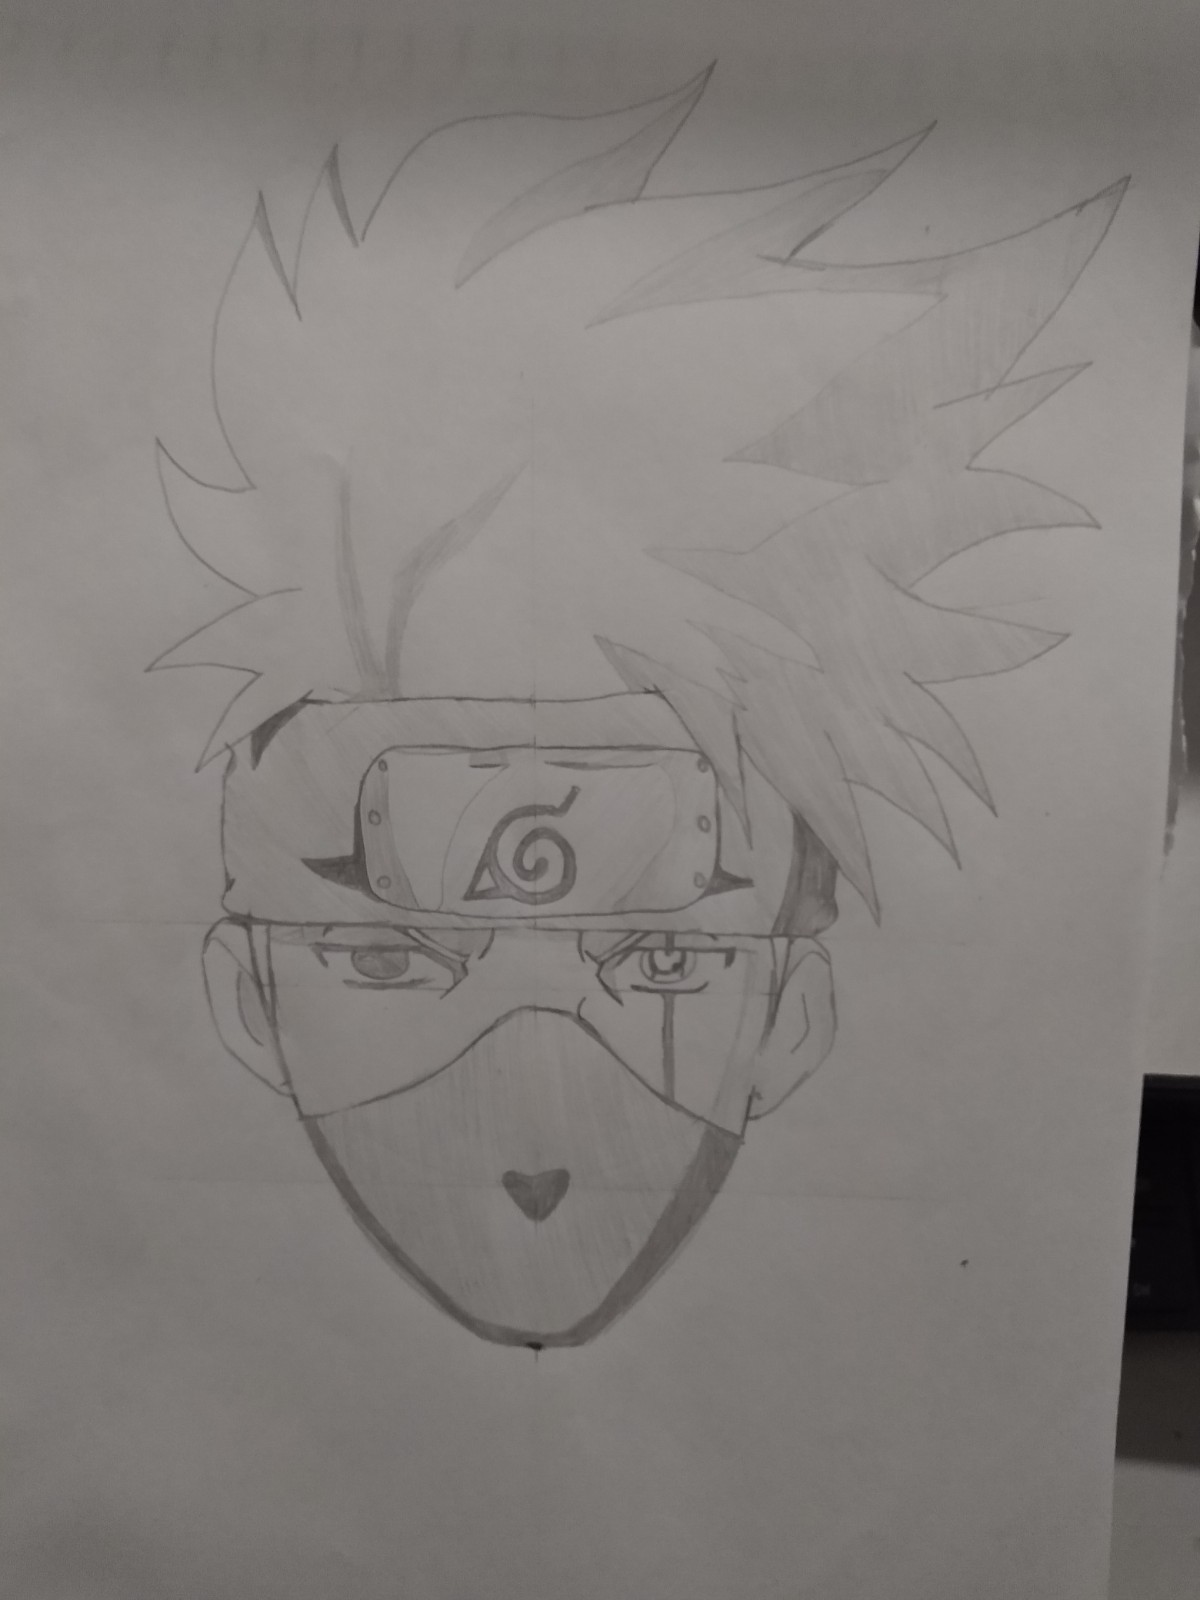 Passo Final - How to Draw Kakashi - Drawing Kakashi with Exclusive and Easy Method